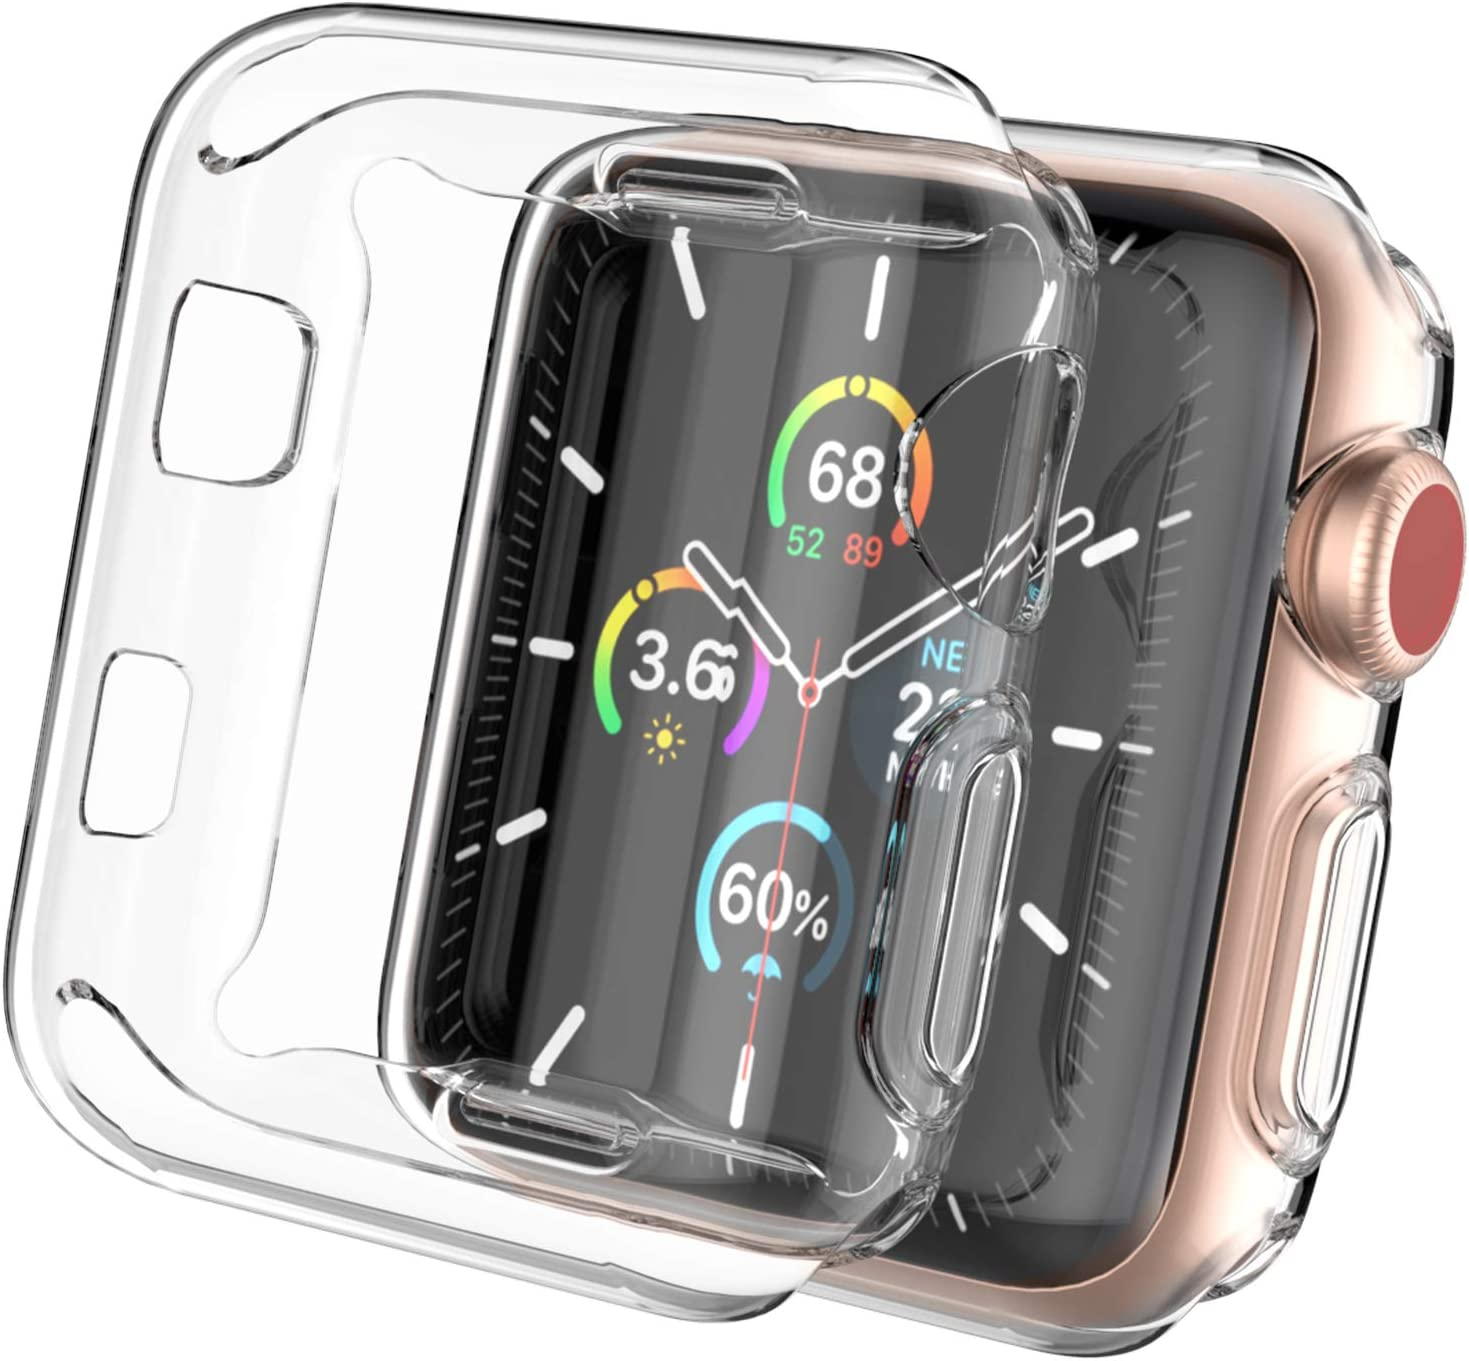 AhaStyle 2 Pack Ultra Clear iWatch Case Screen Protector Full Coverage Slim Case Cover Shockproof [Not Wateproof] Compatible with Apple Watch 38mm 42mm 40mm 44mm, iWatch Series SE/6/5/4/3/2/1(40mm)